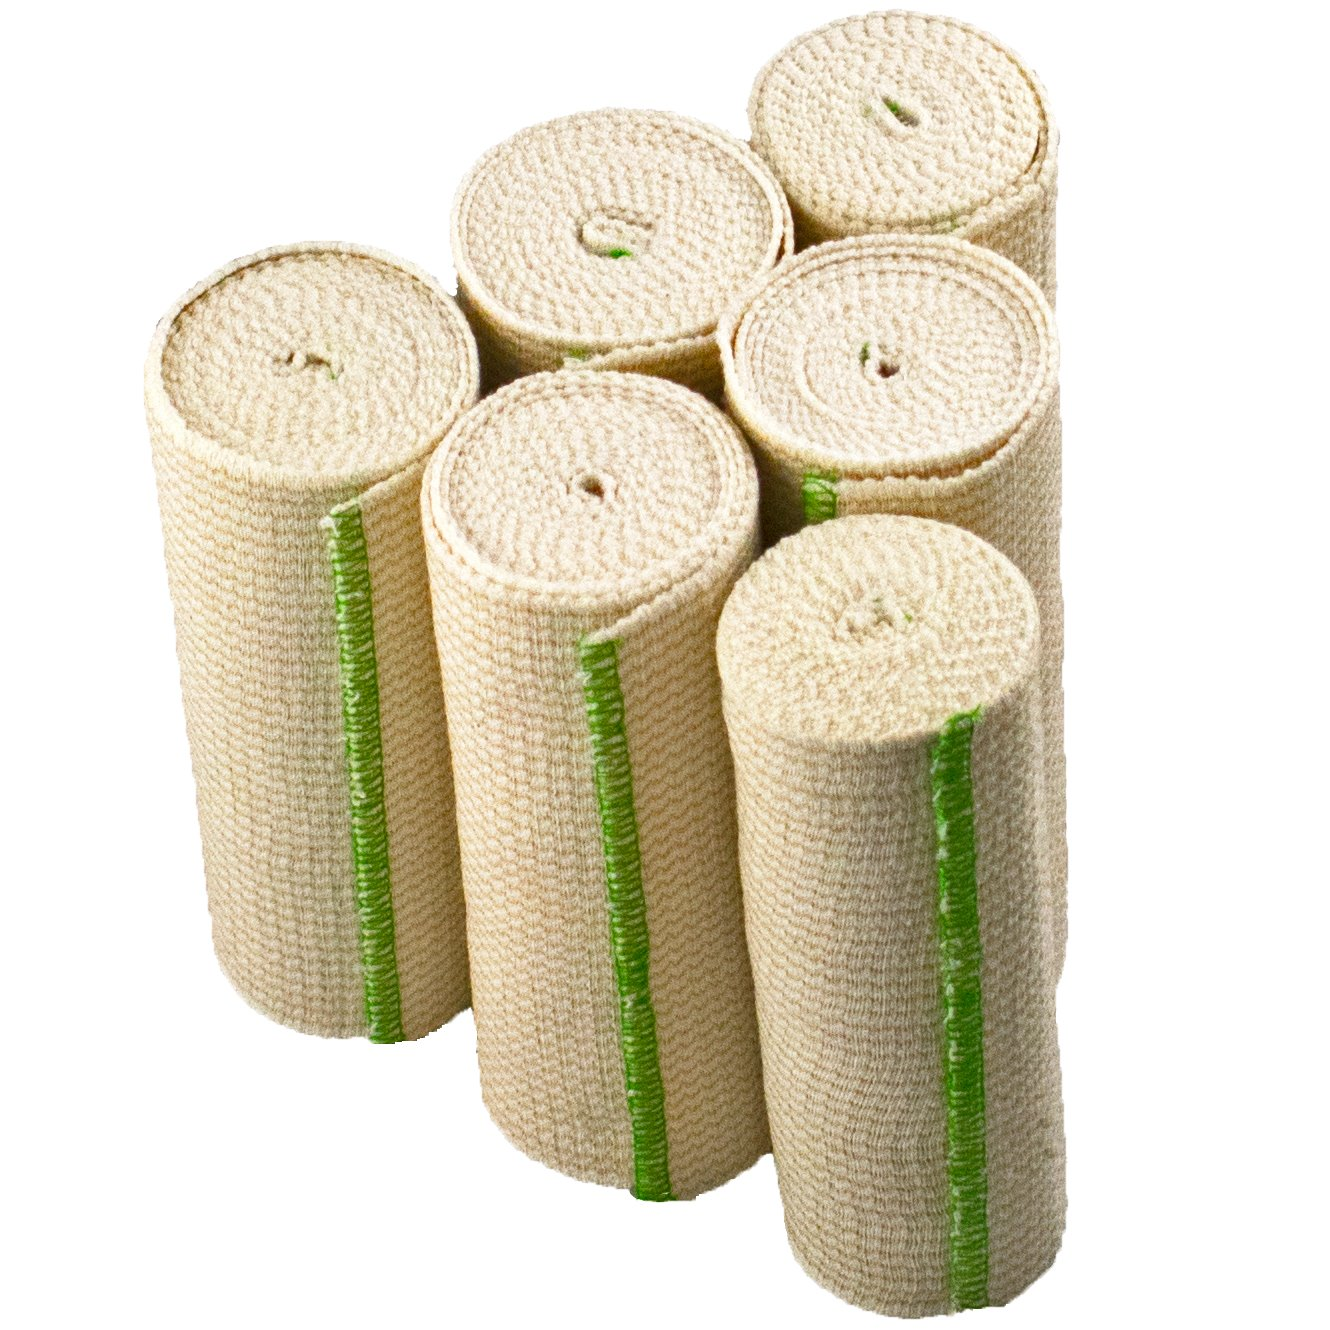 NexSkin Elastic Compression Wrap (6'' Wide, 6 Pack) with Hook and Loop Fasteners at Both Ends   Stretch Cotton Athletic Bandage Roll   Support & First Aid for Sports, Medical, and Injury Recovery by NexSkin